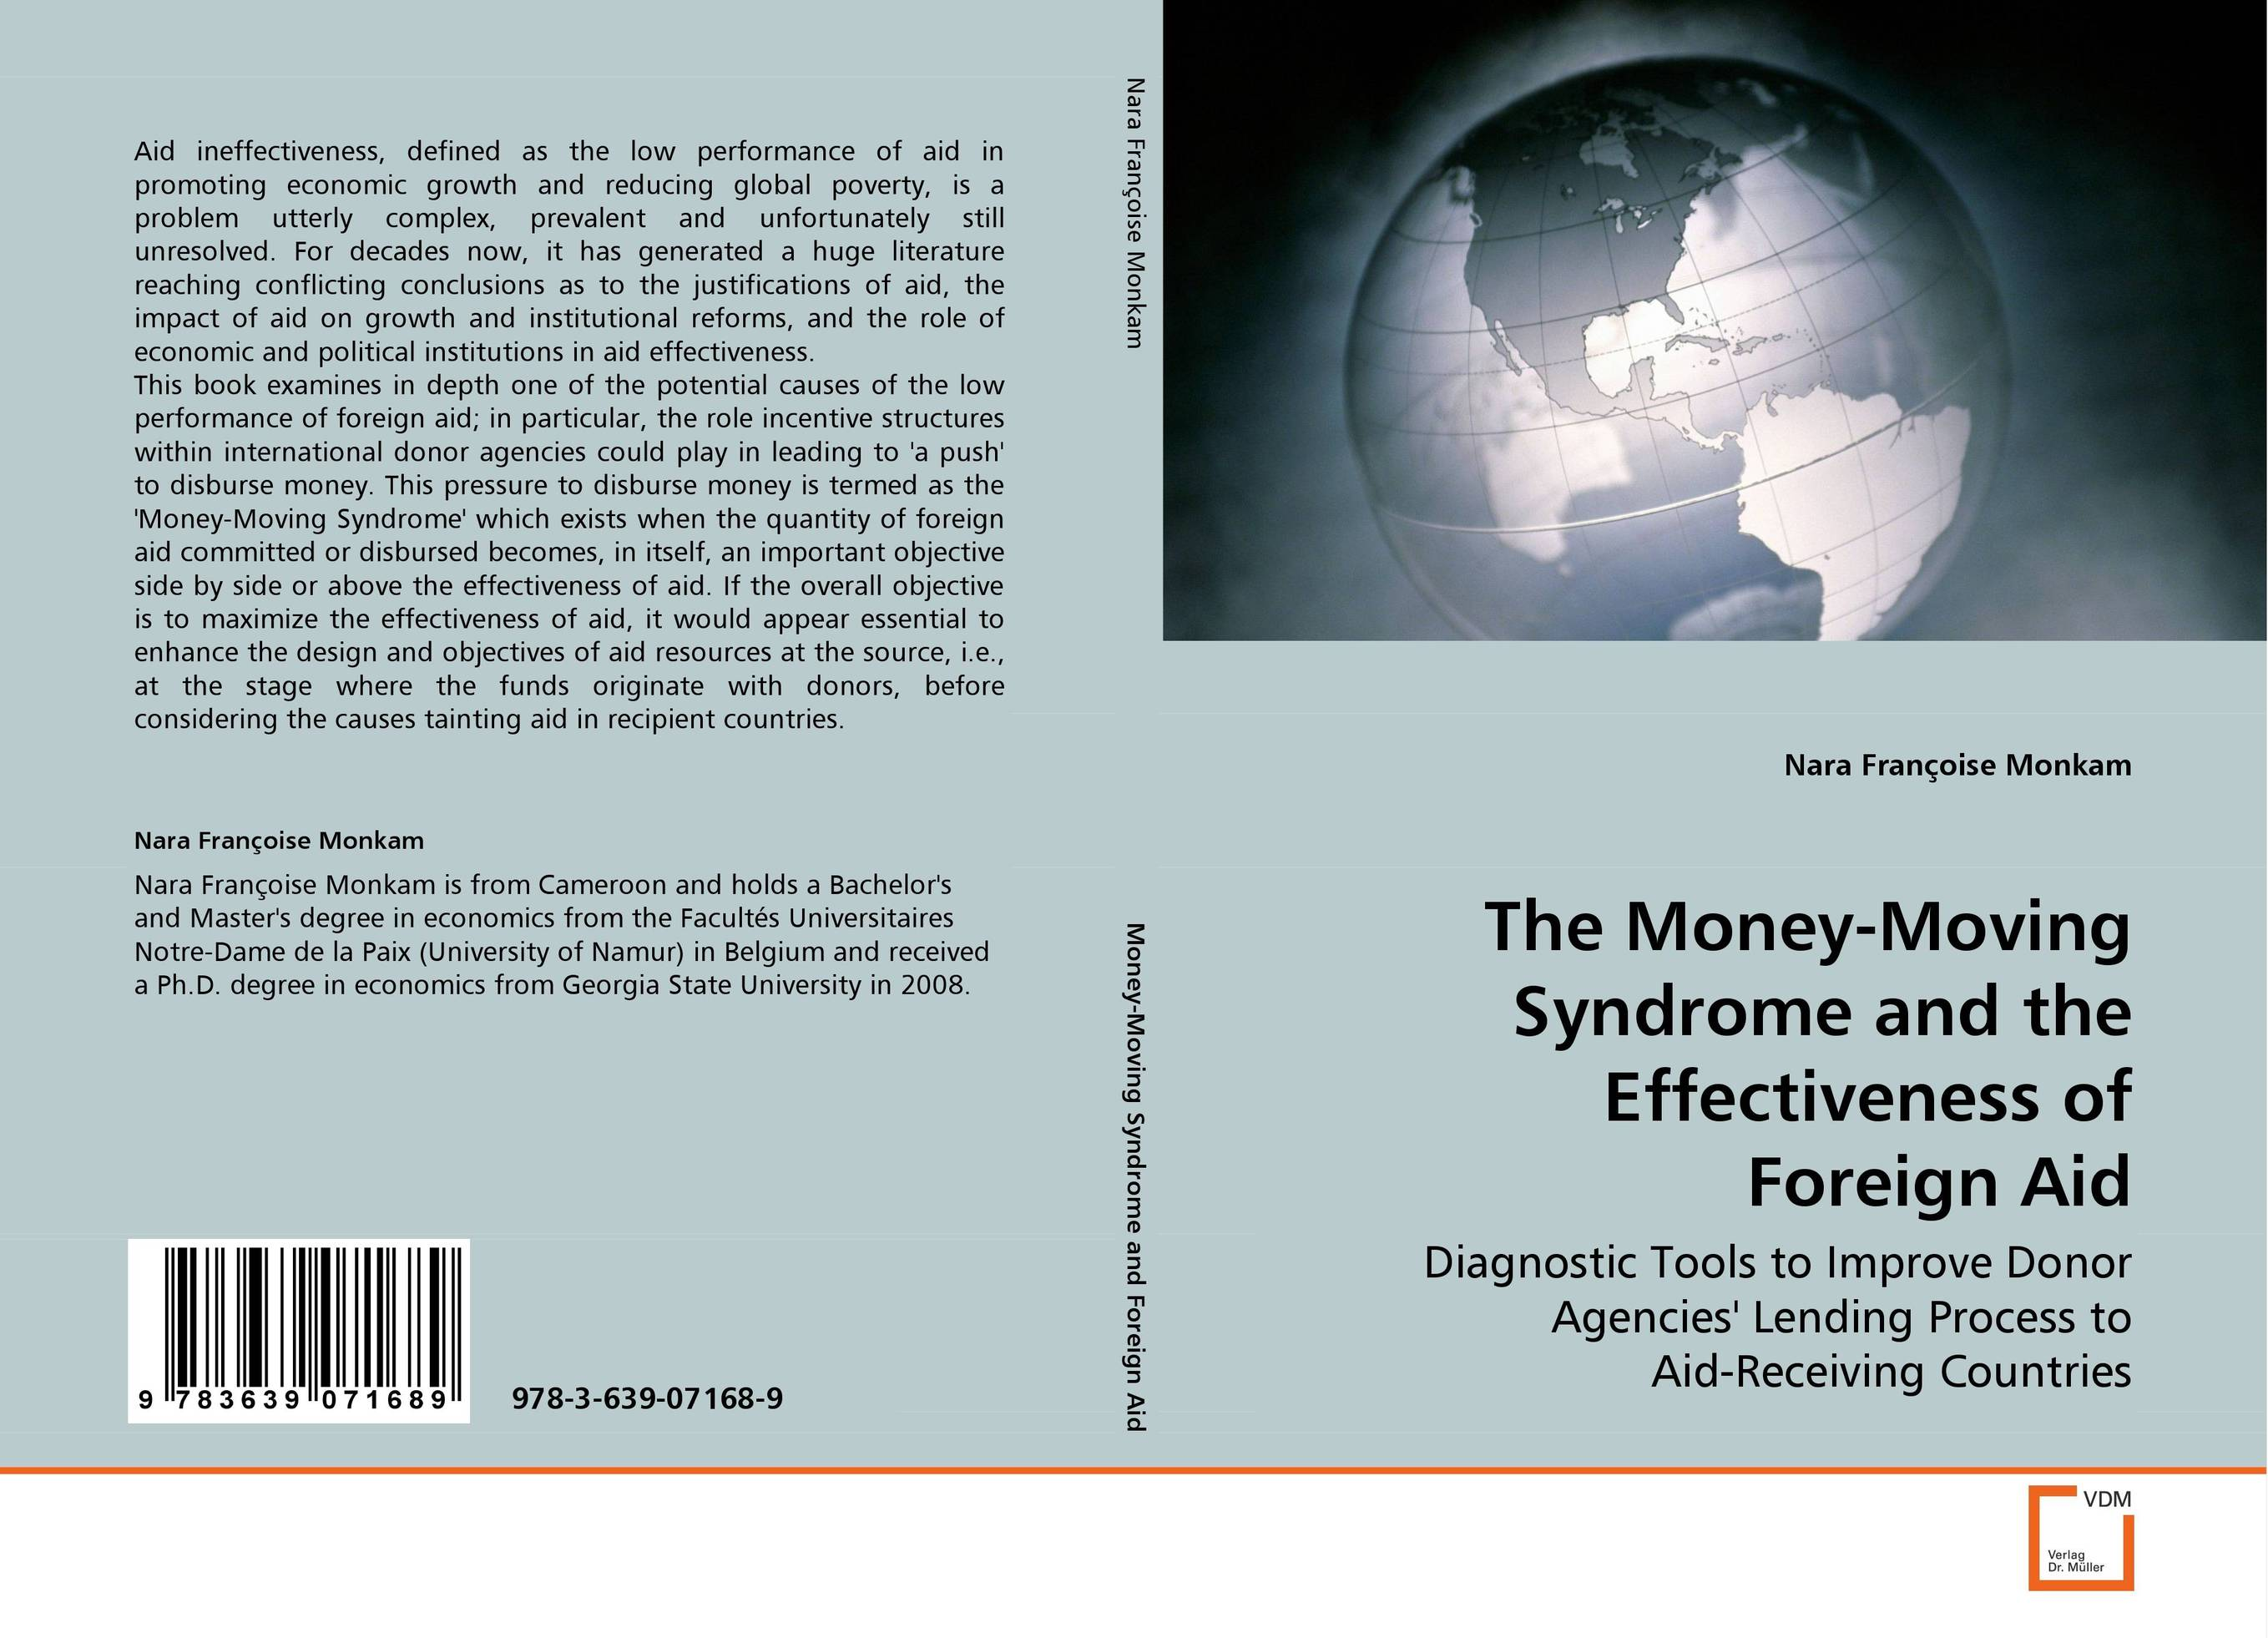 The Money-Moving Syndrome and the Effectiveness ofForeign Aid foreign aid and social sector of pakistan